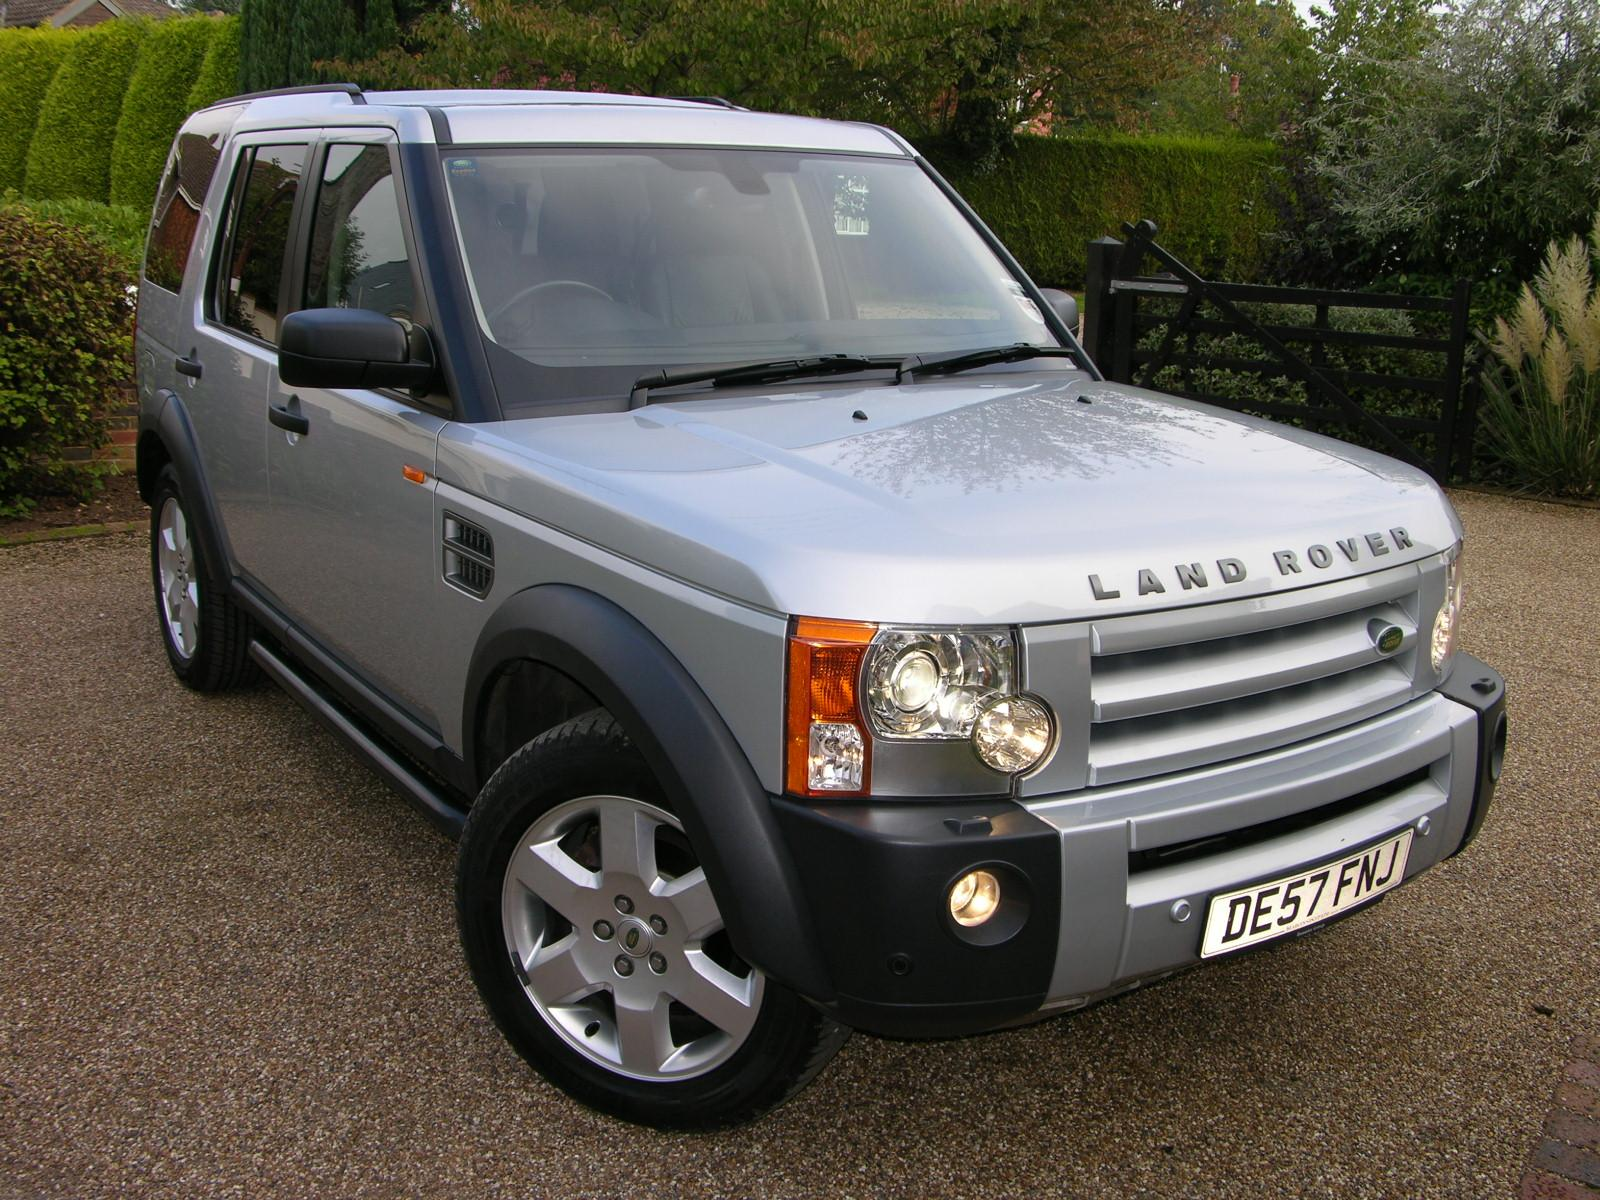 file land rover discovery 3 tdv6 hse flickr the car spy 4 jpg wikimedia commons. Black Bedroom Furniture Sets. Home Design Ideas